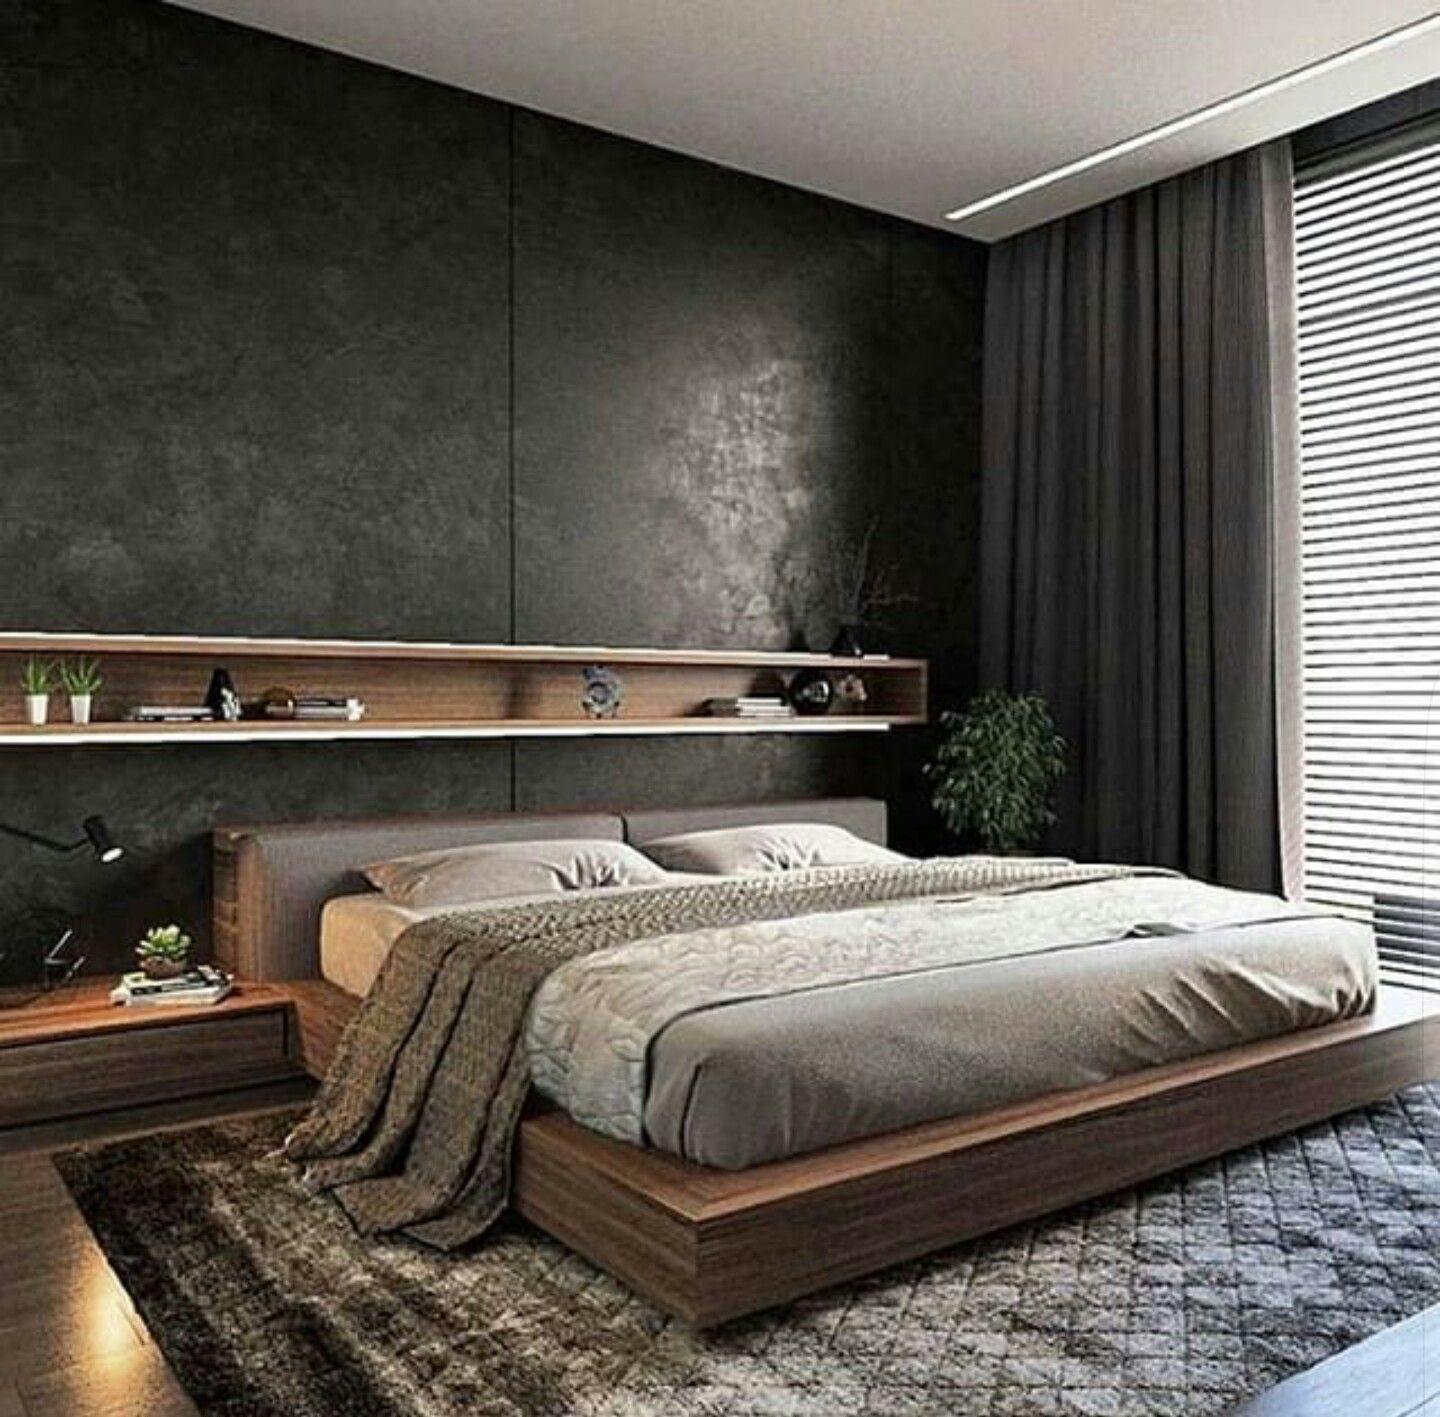 Best Pin By Hossam Resh On Hoso Apartment Bedroom Design 400 x 300